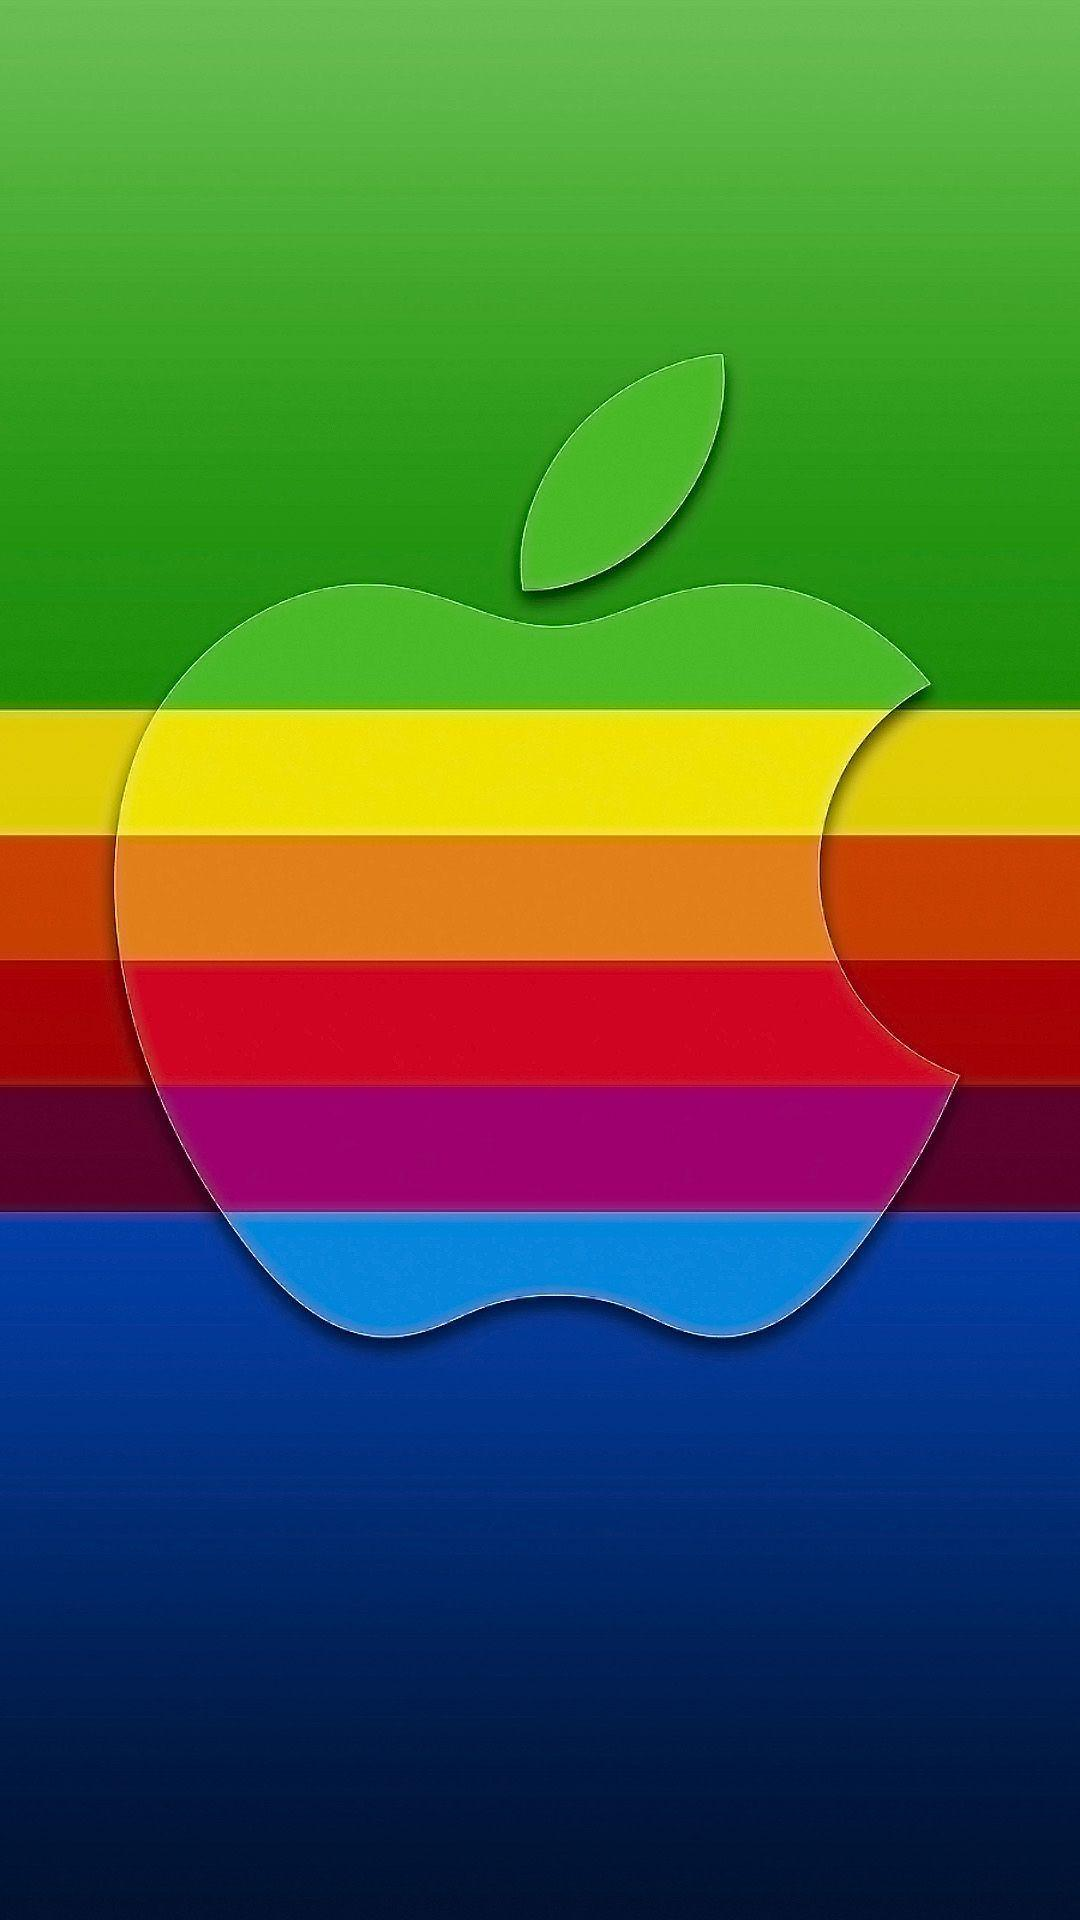 apple iphone wallpapers - wallpaper cave